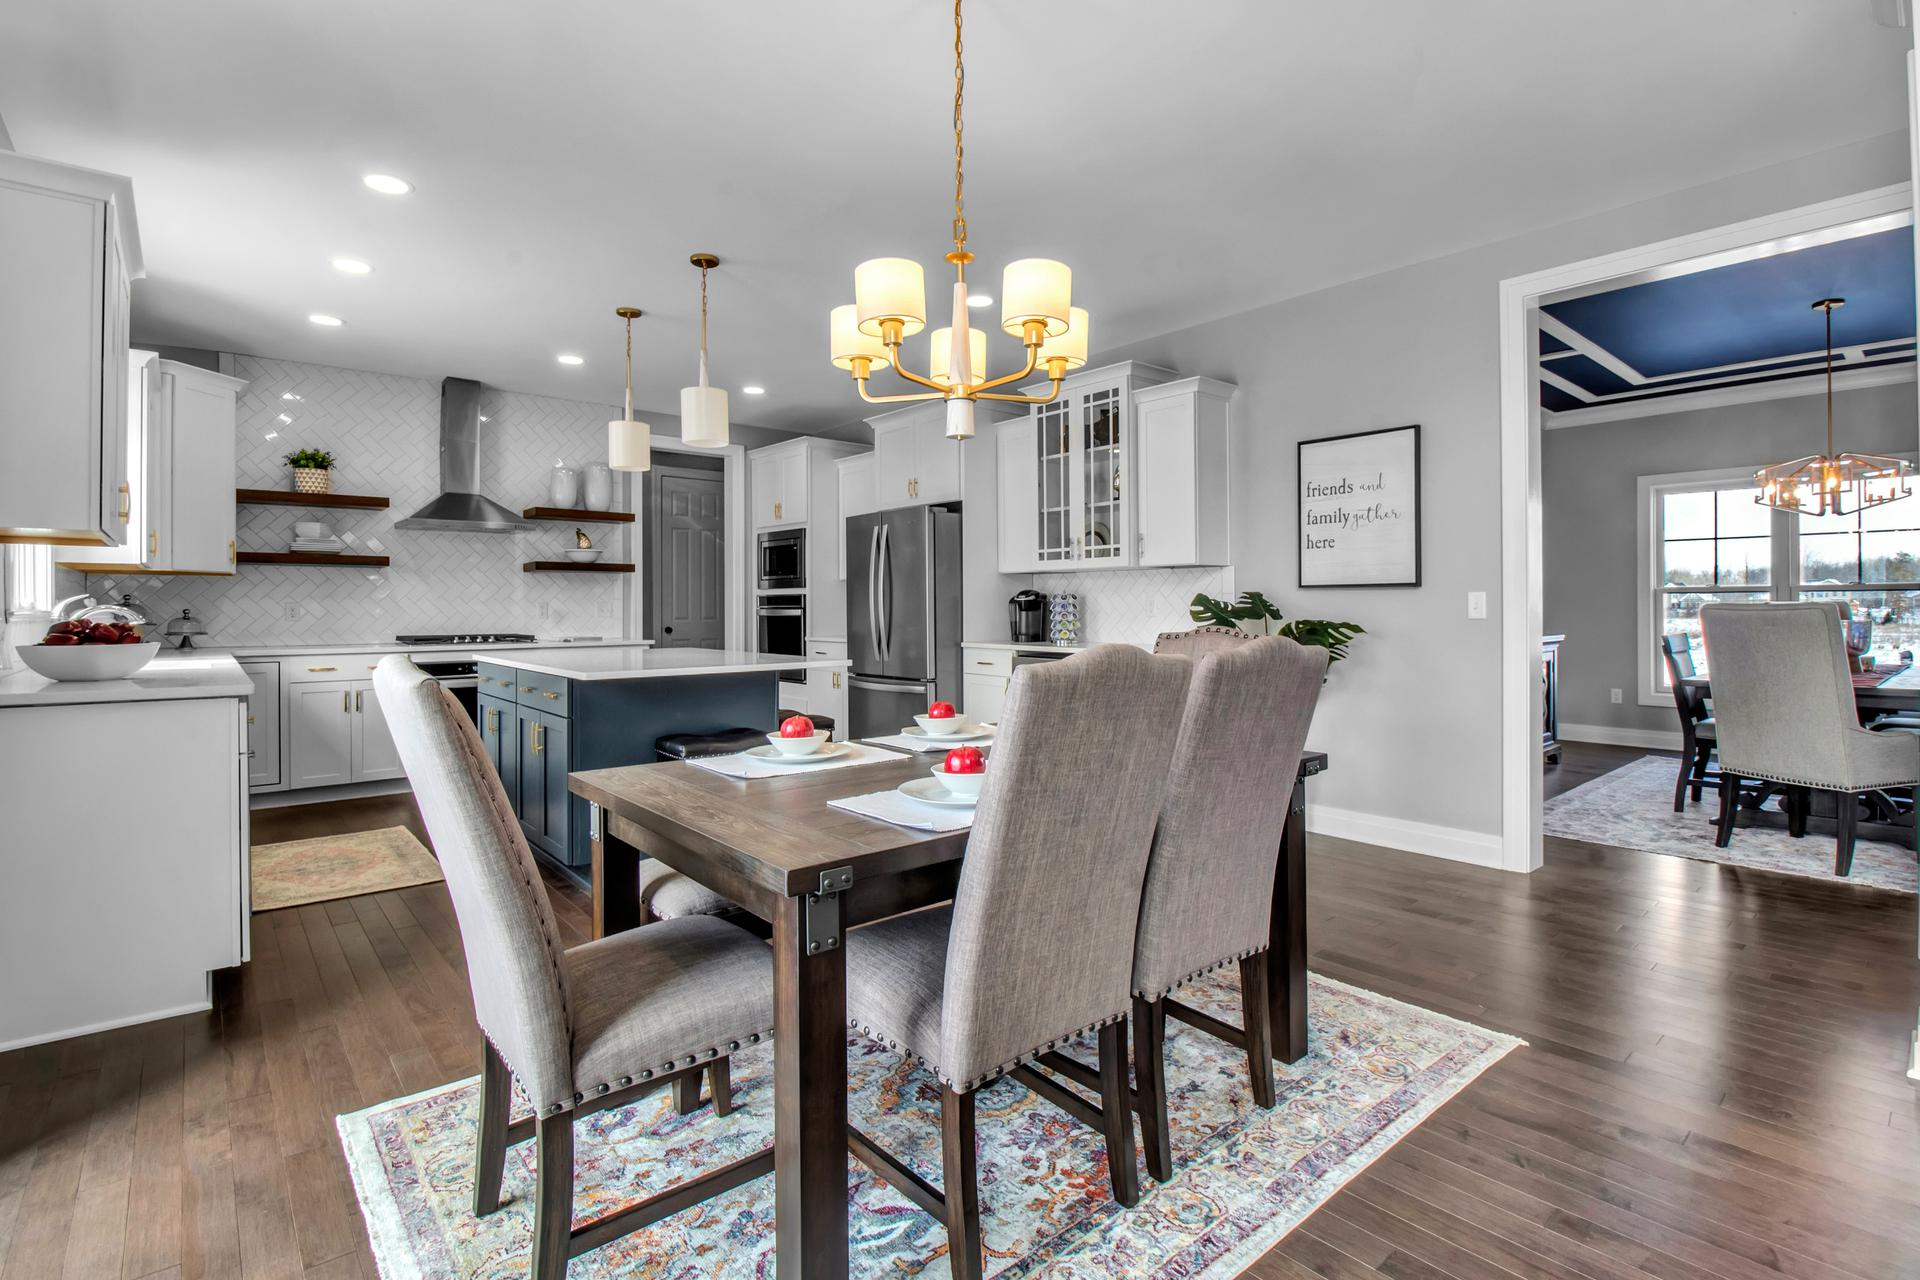 4br New Home in Orchard Park, NY